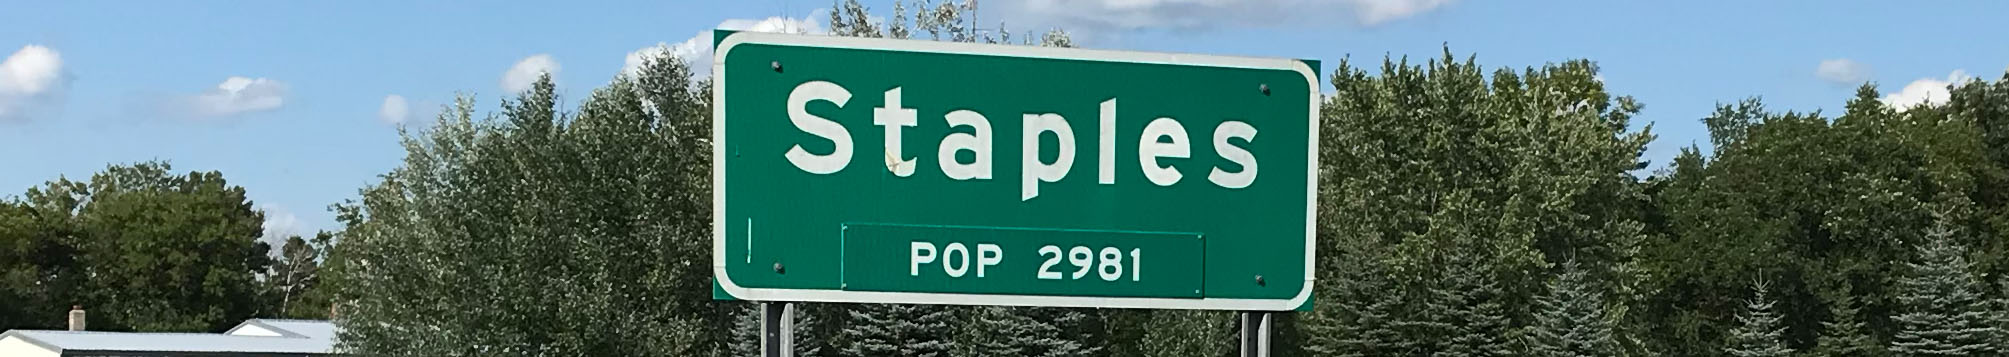 Staples Image